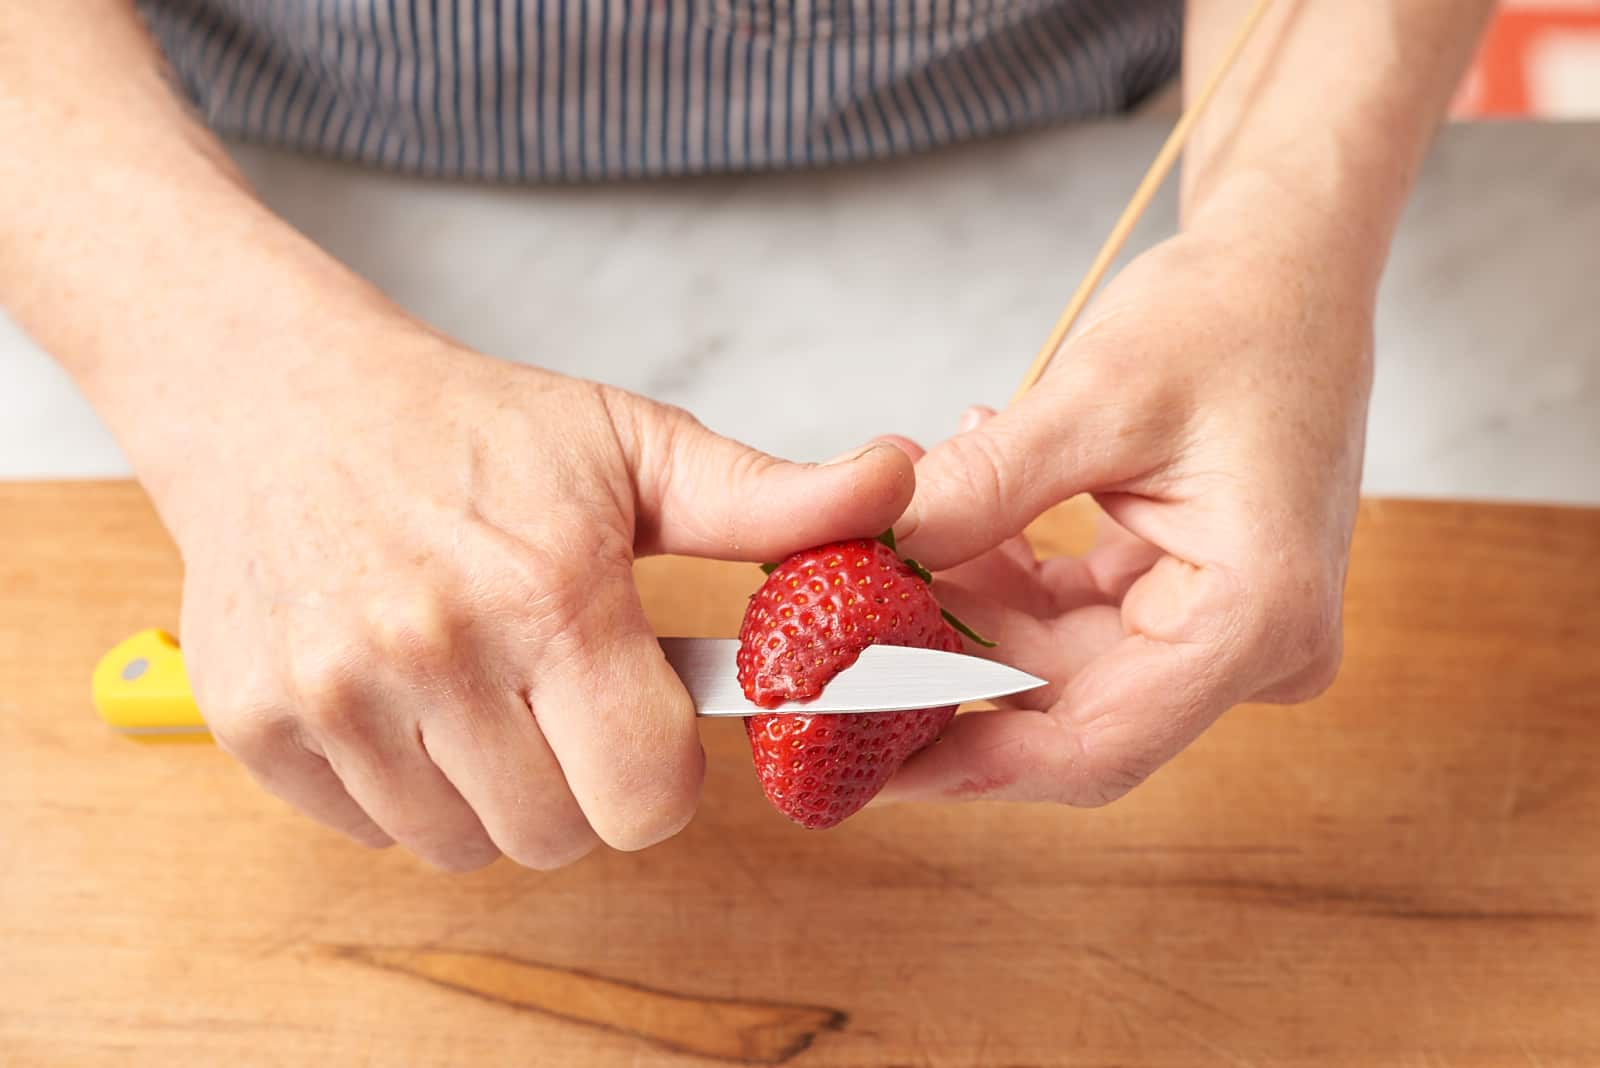 How To Make Strawberry Roses: gallery image 2